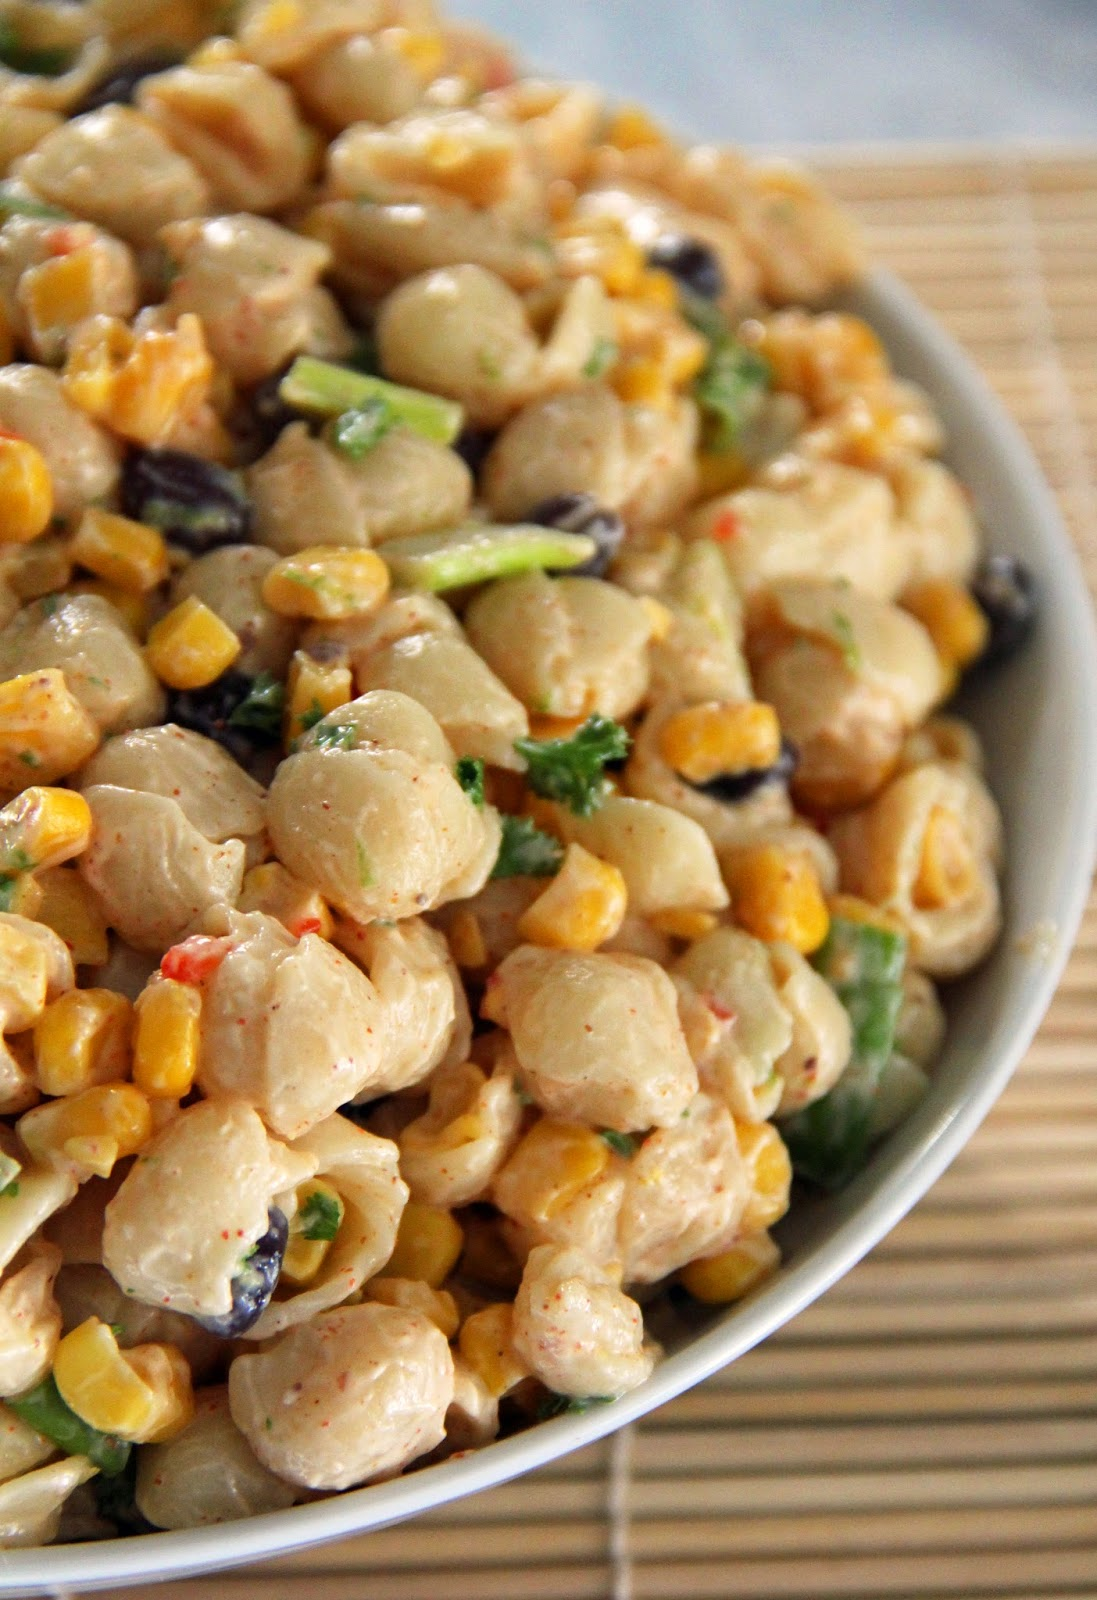 ... and Sue: Spicy Southwest Pasta & Corn Salad With Chili Lime Dressing